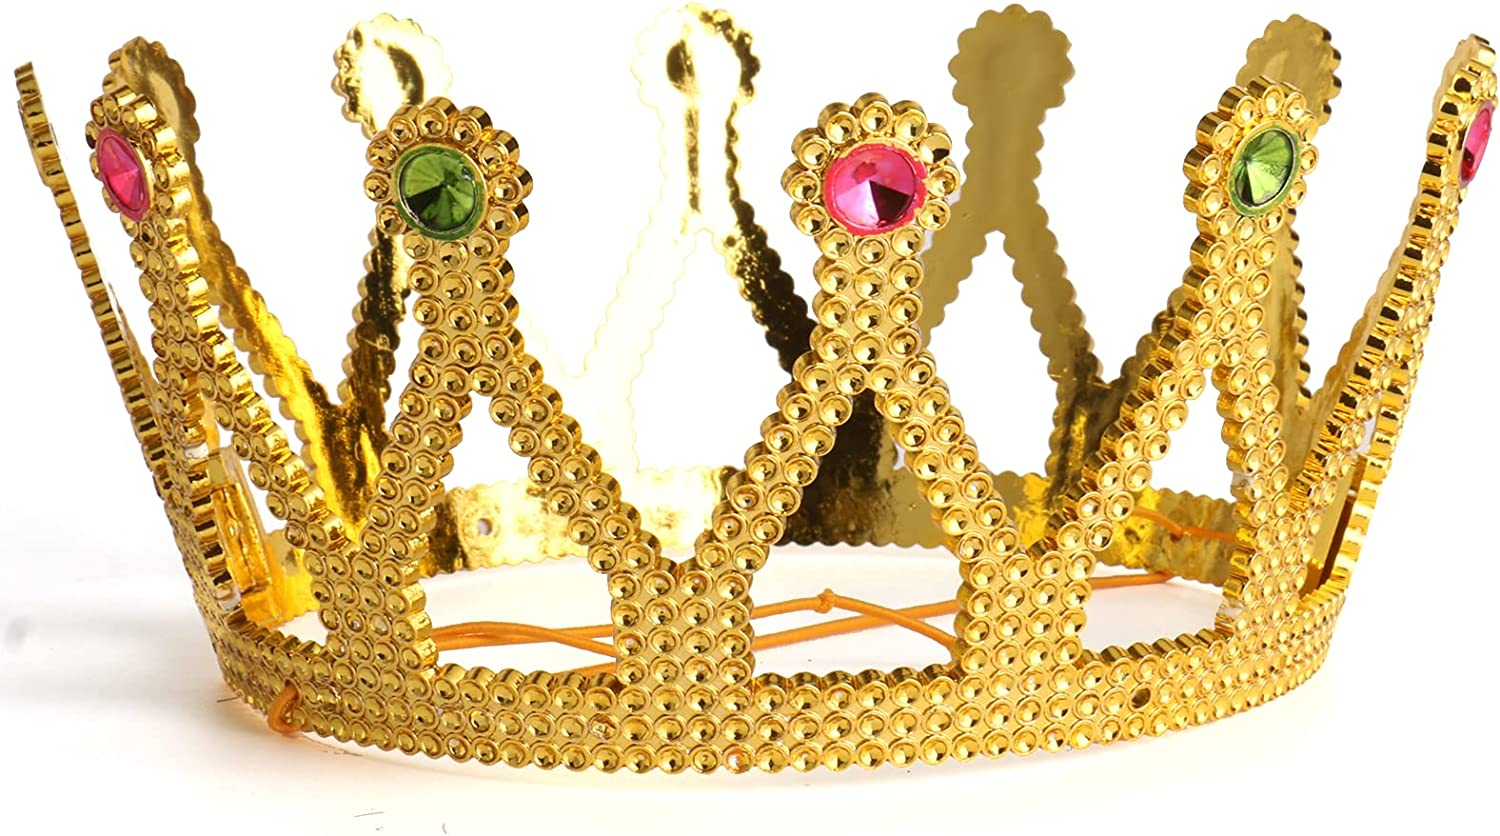 Gold Crown Royal Queen New item King Lowest price challenge Costume